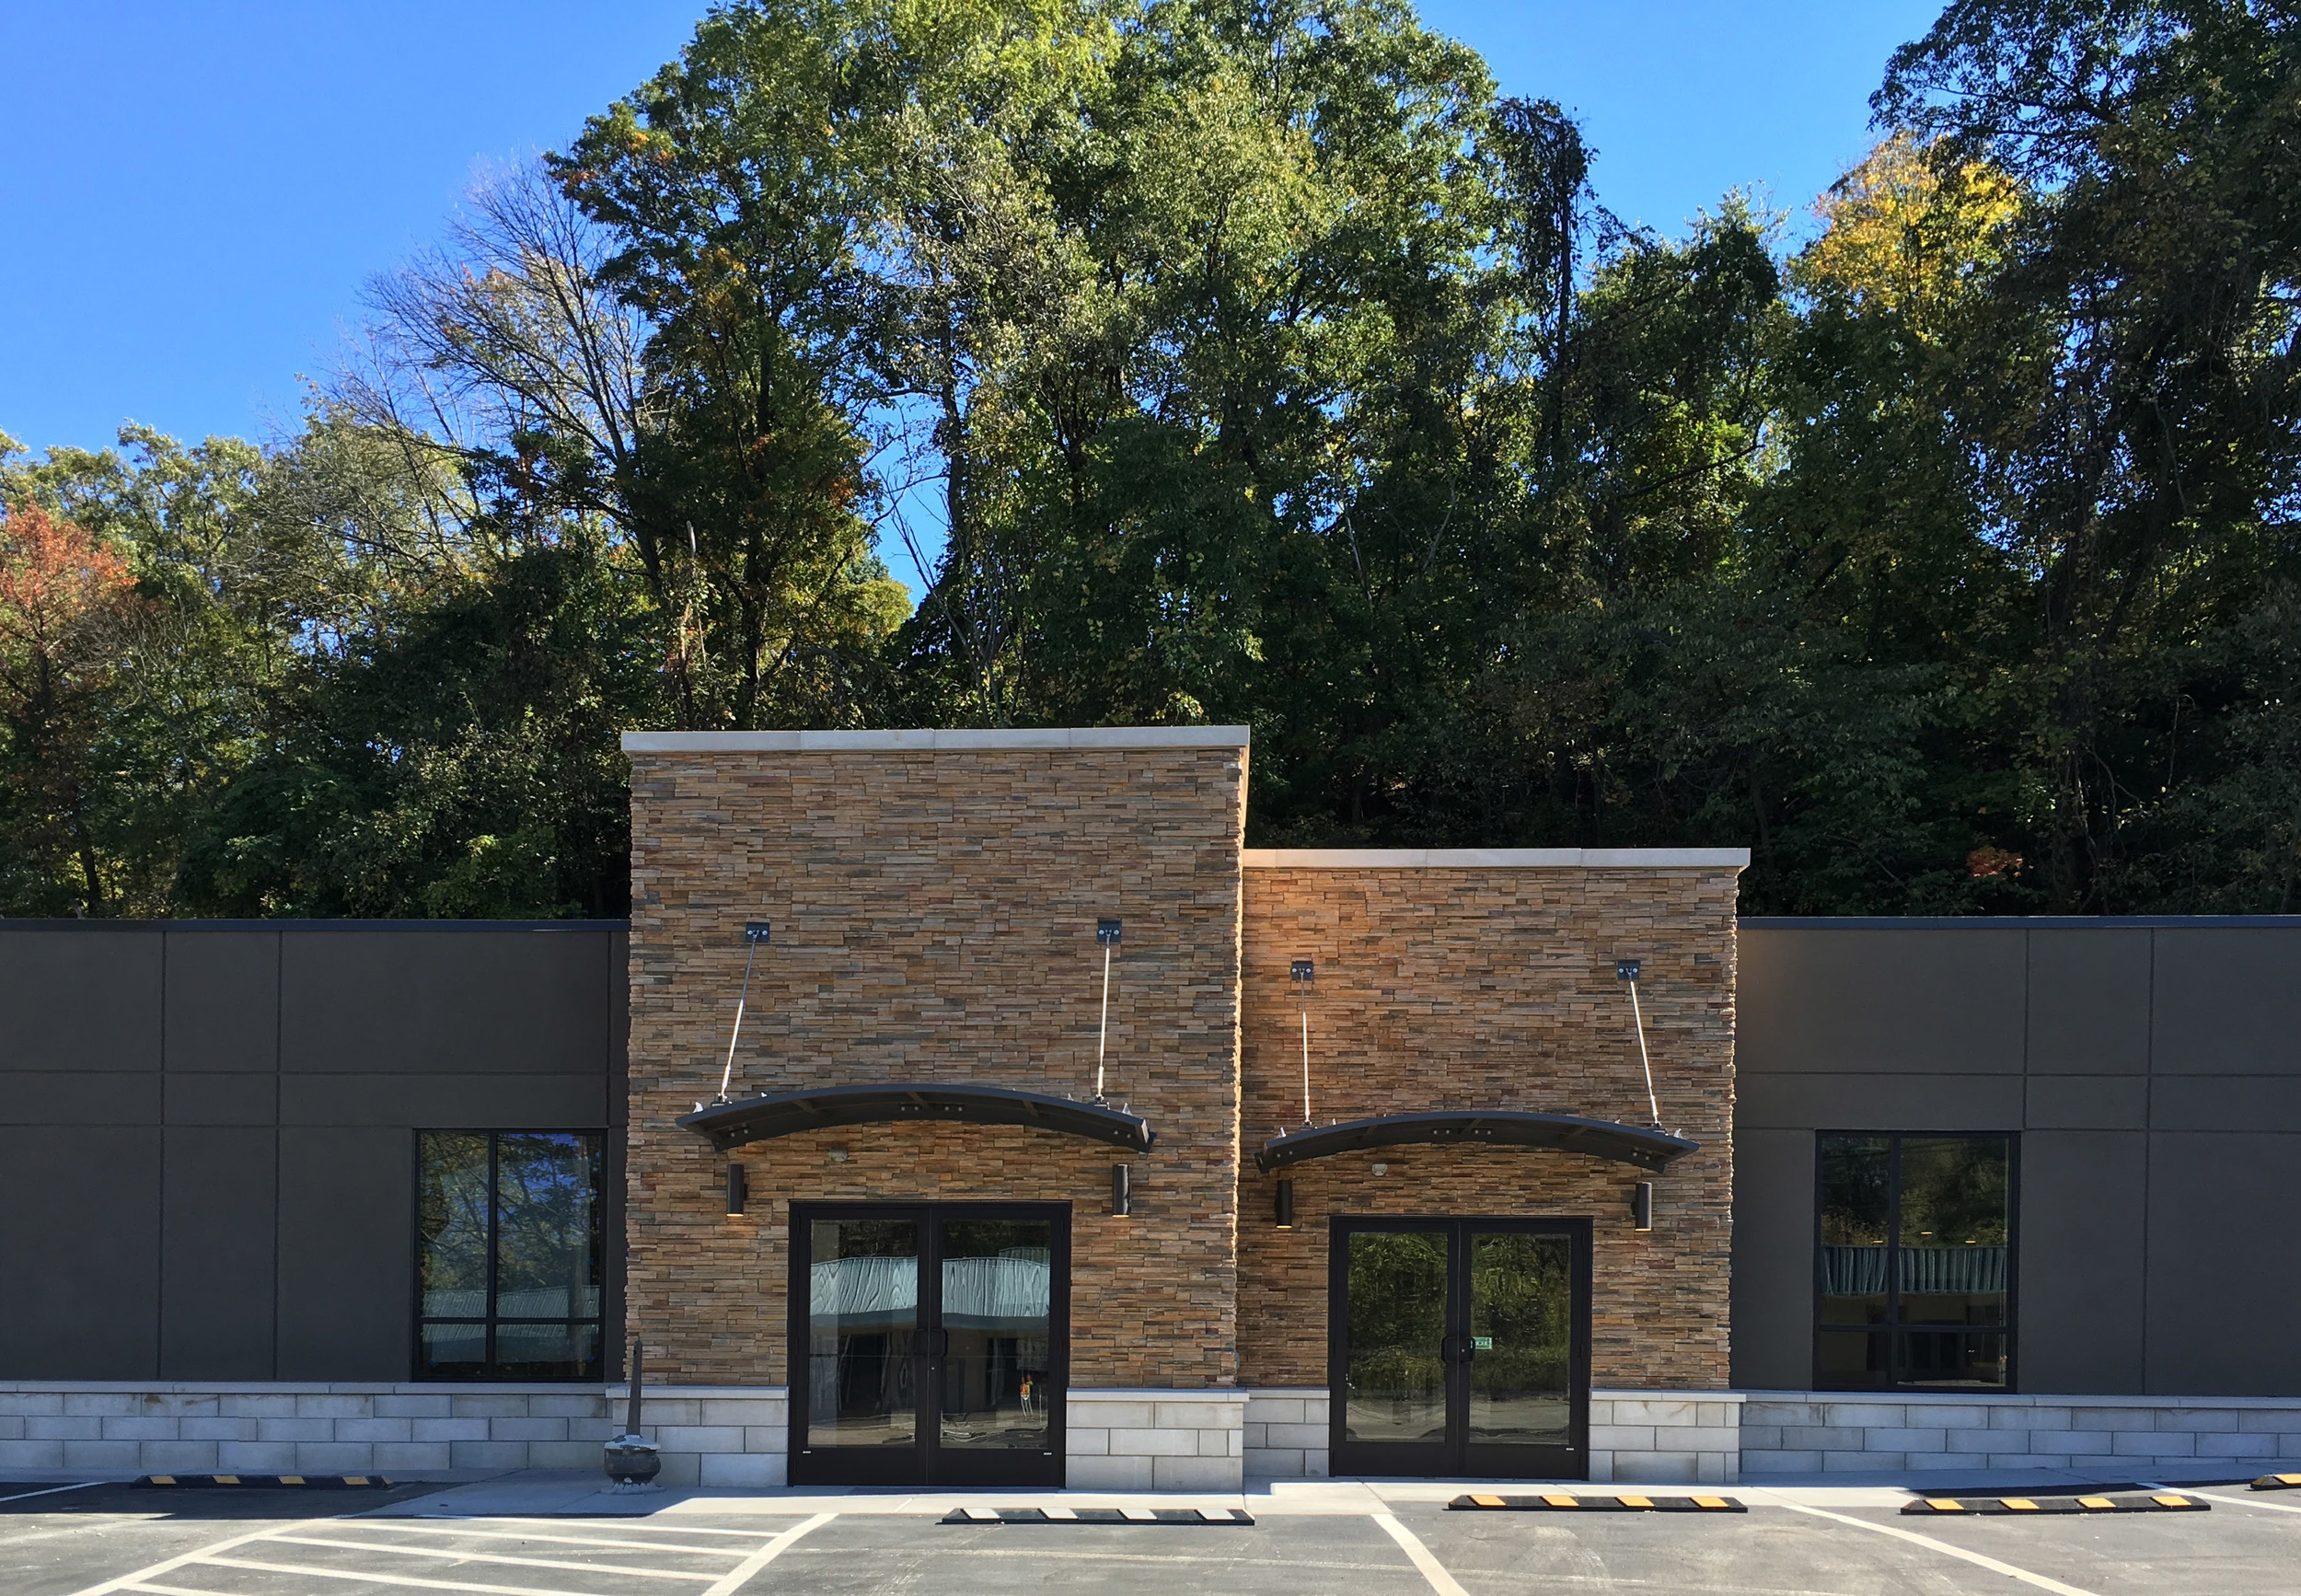 COMPLETED: Facade renovation